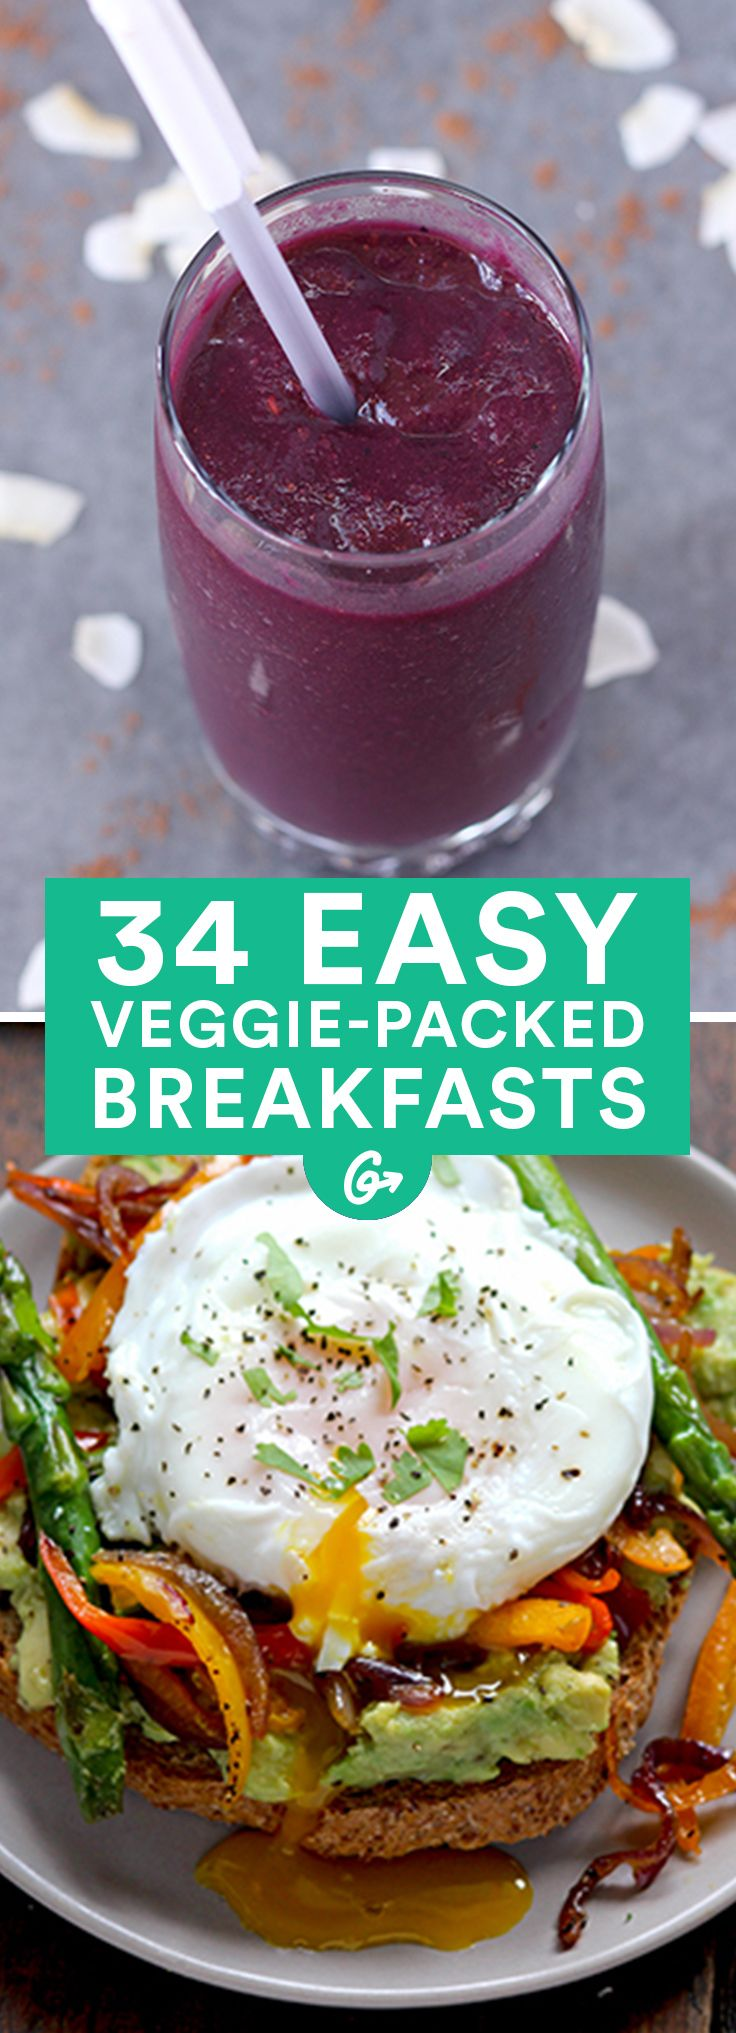 And they're not all omelets! When you want a satisfying, savory start to the day, try one of these delicious recipes #healthy #breakfast #recipes http://greatist.com/eat/healthy-breakfast-recipes-with-vegetables